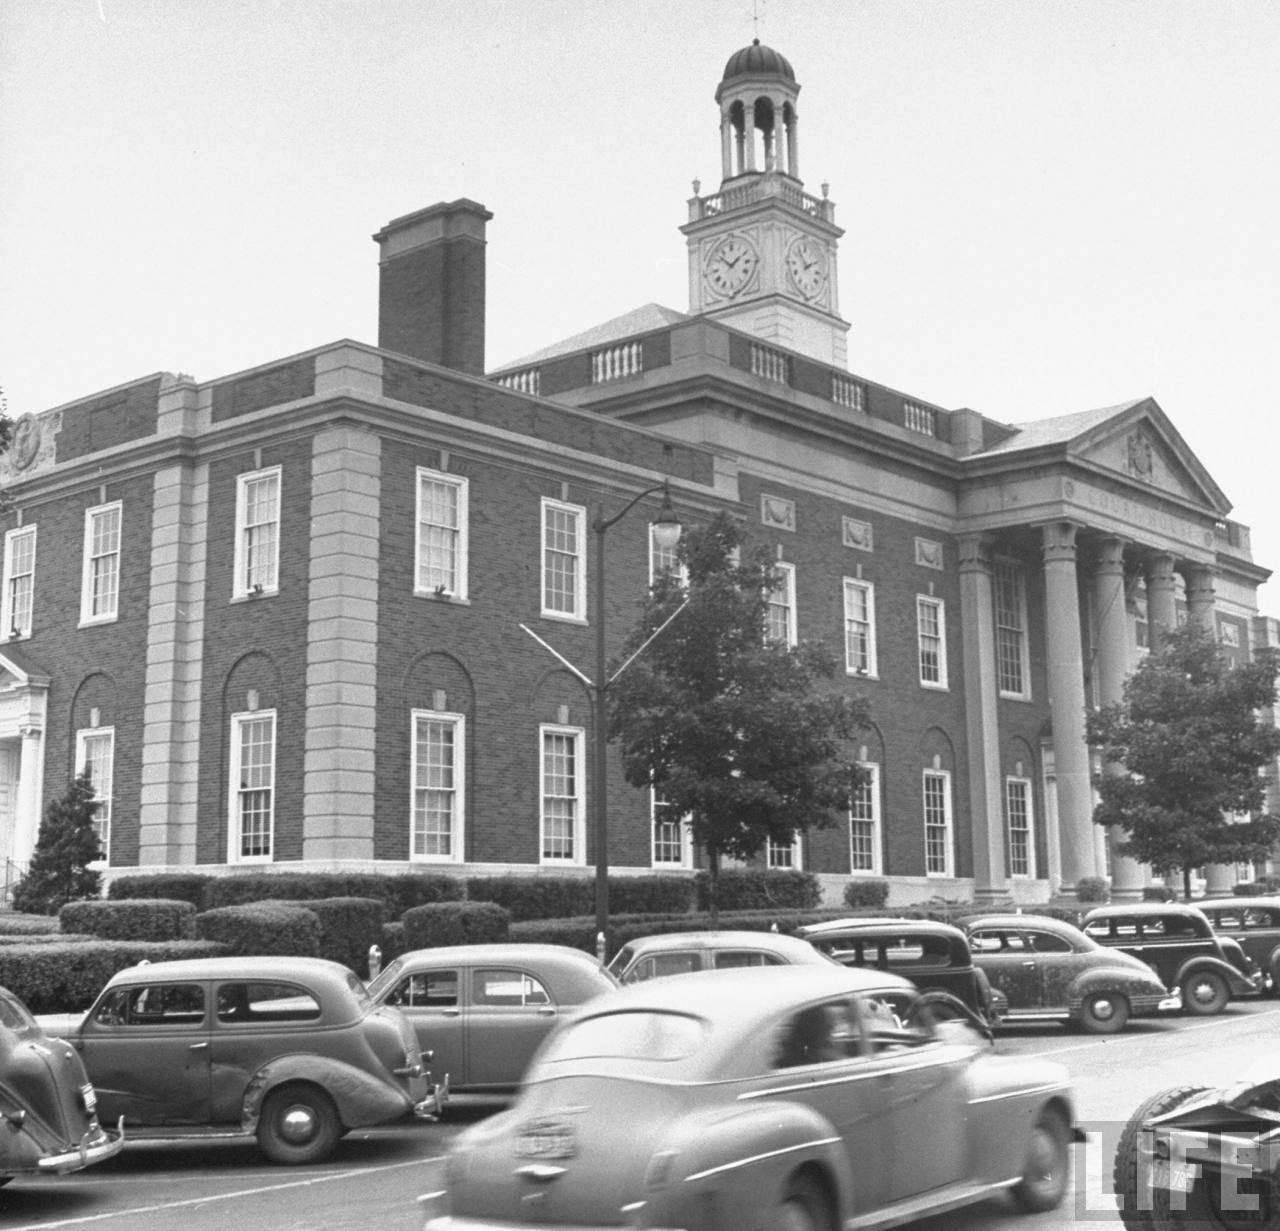 Cars crowding the parking lot in front of the courthouse. Independence, MO, US